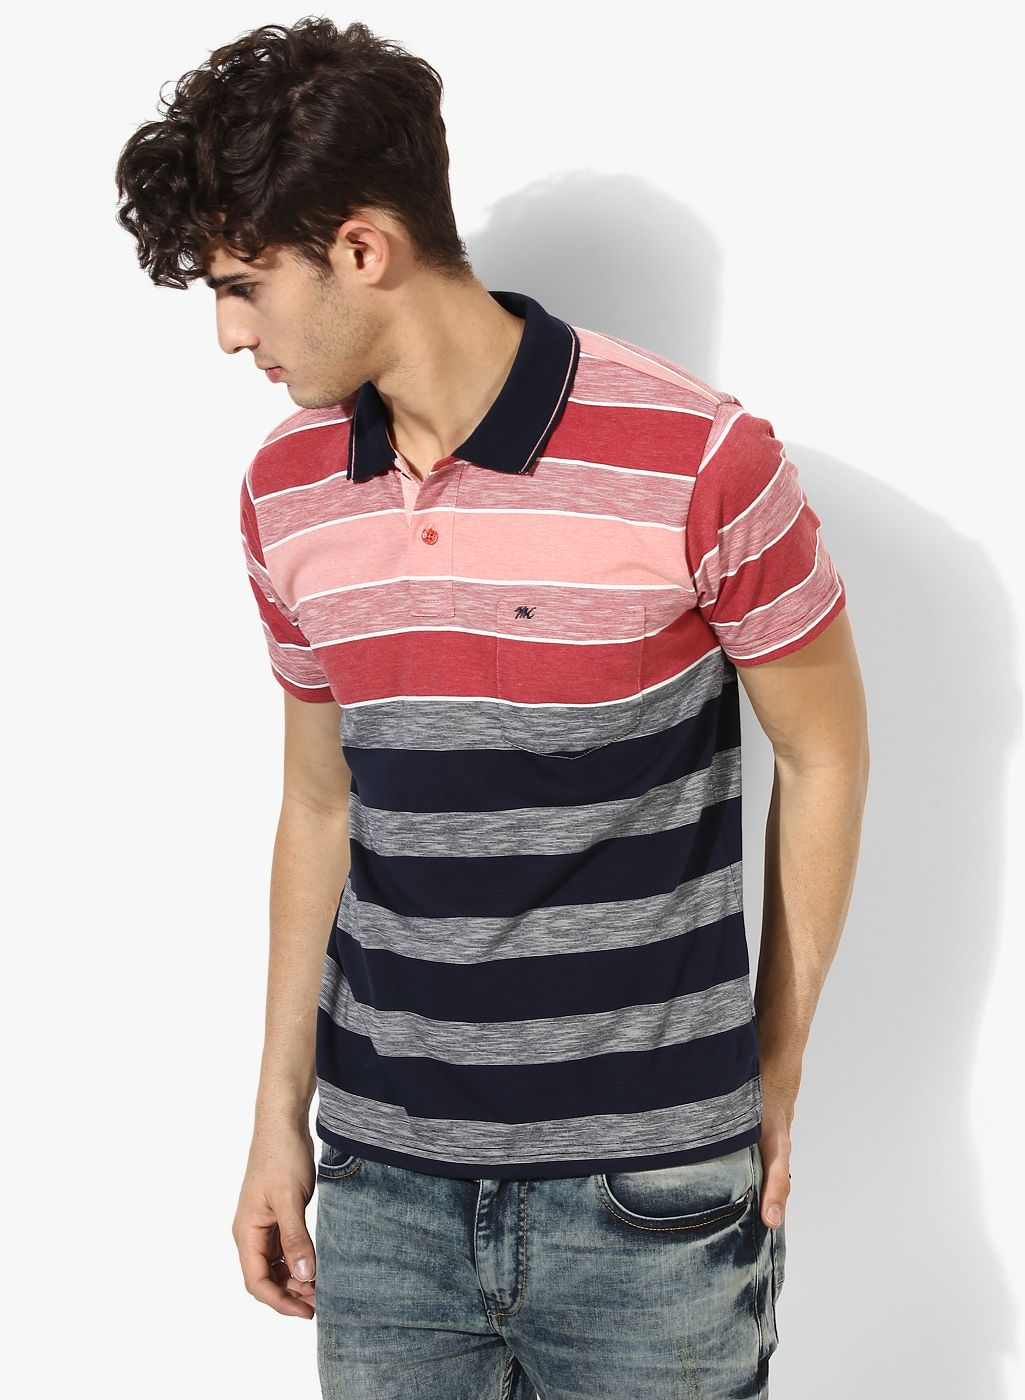 3c31b4231 Buy Monte Carlo Multicoloured Striped Regular Fit Polo T-Shirt for Men  Online India, Best Prices, Reviews | MO514MA85QLFINDFAS